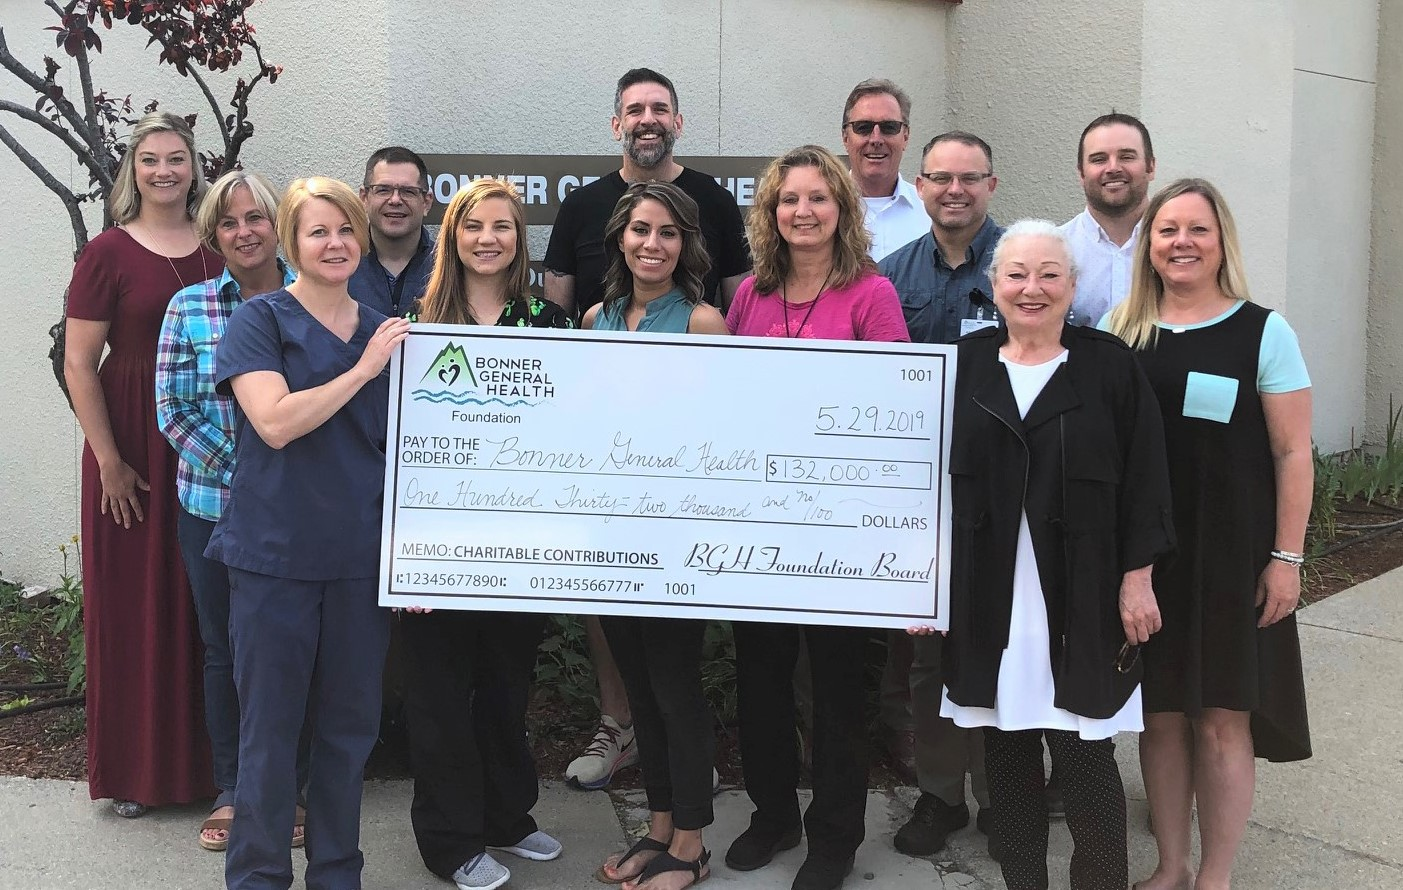 Foundation board check presentation to BGH - ENT 2019 cropped